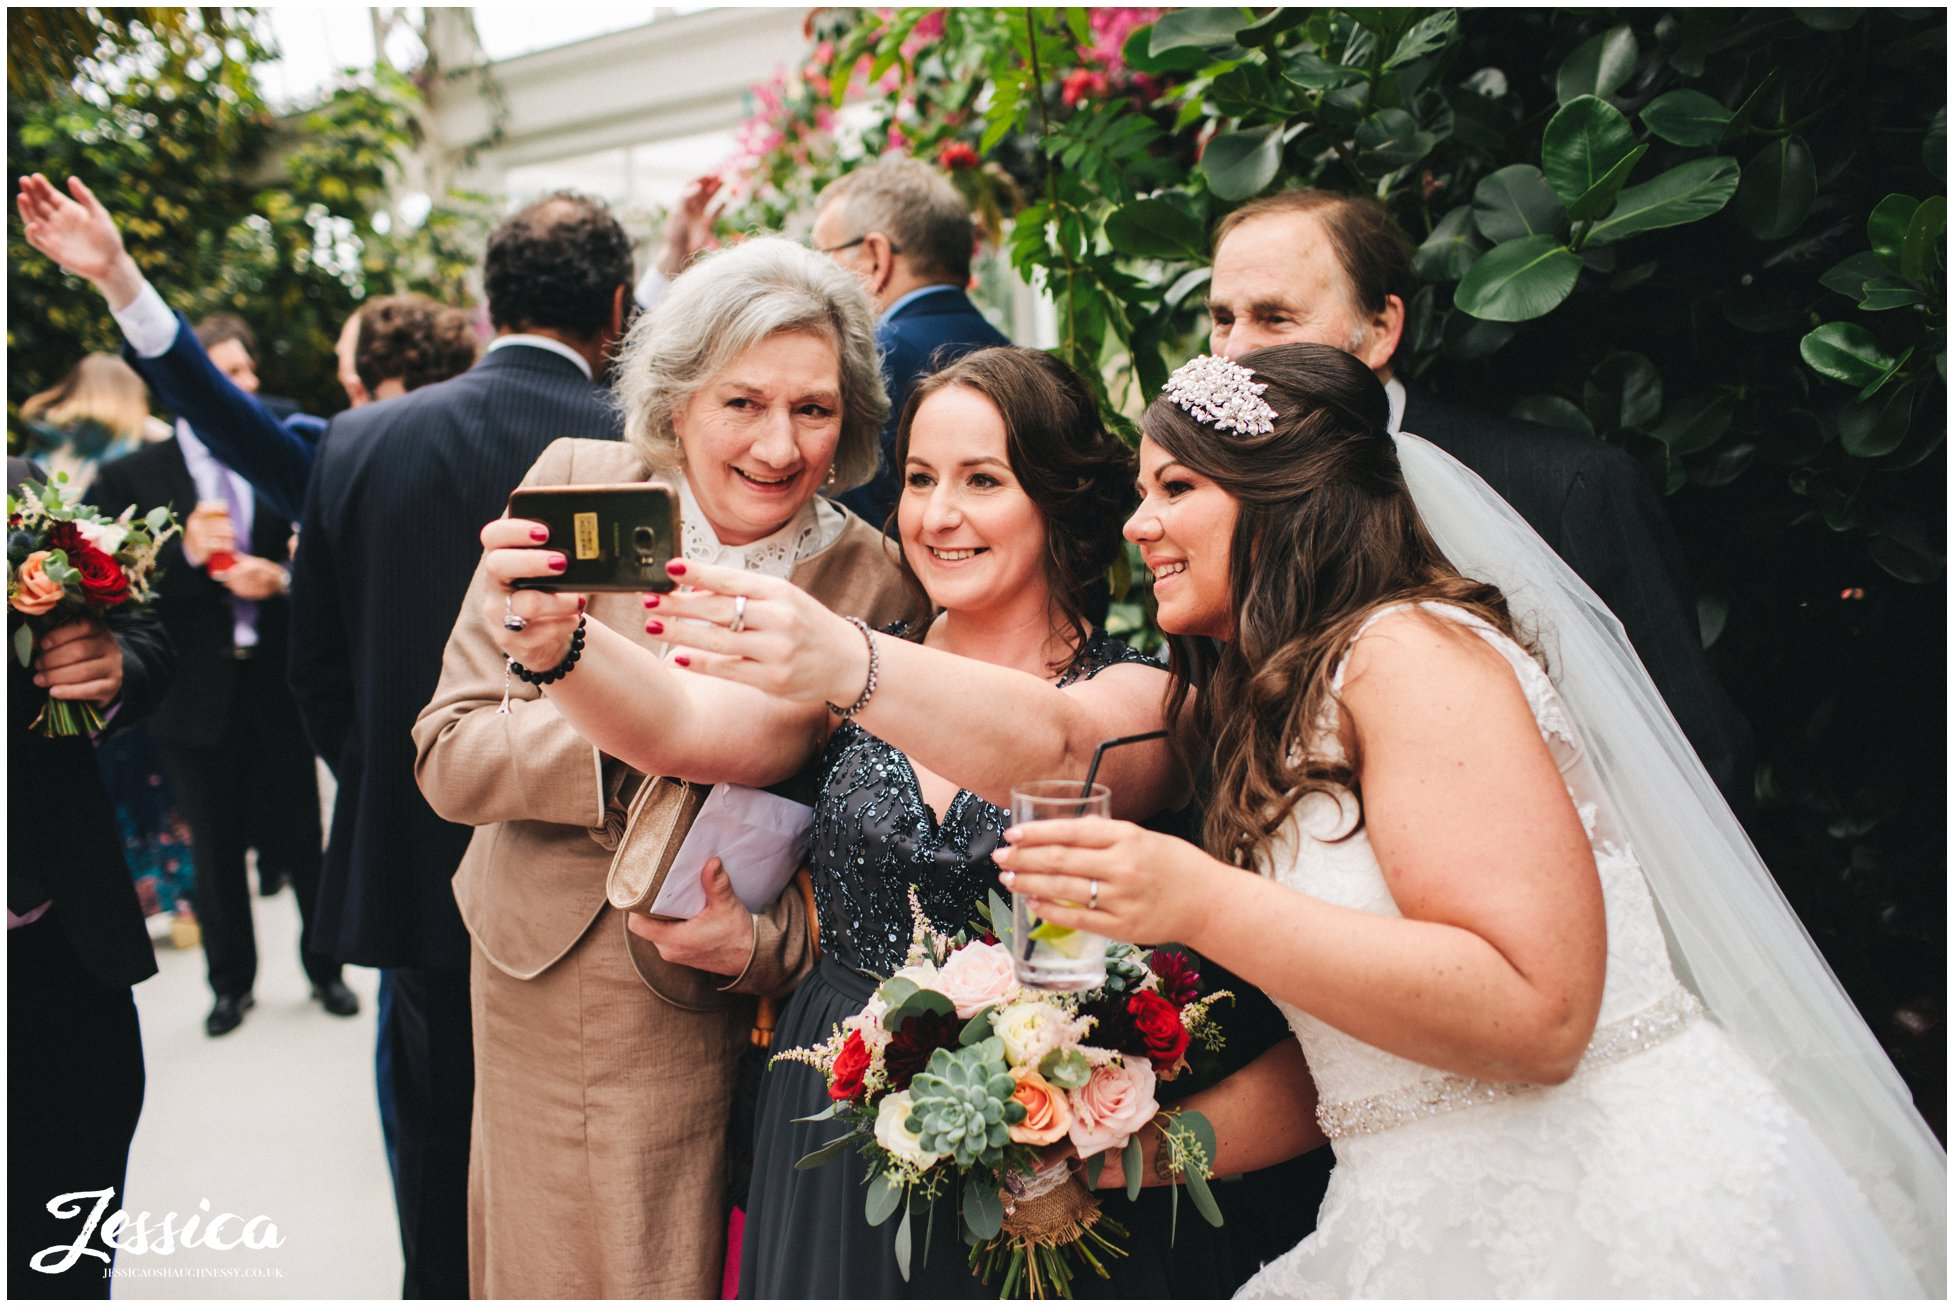 guests take a selfie with the bride